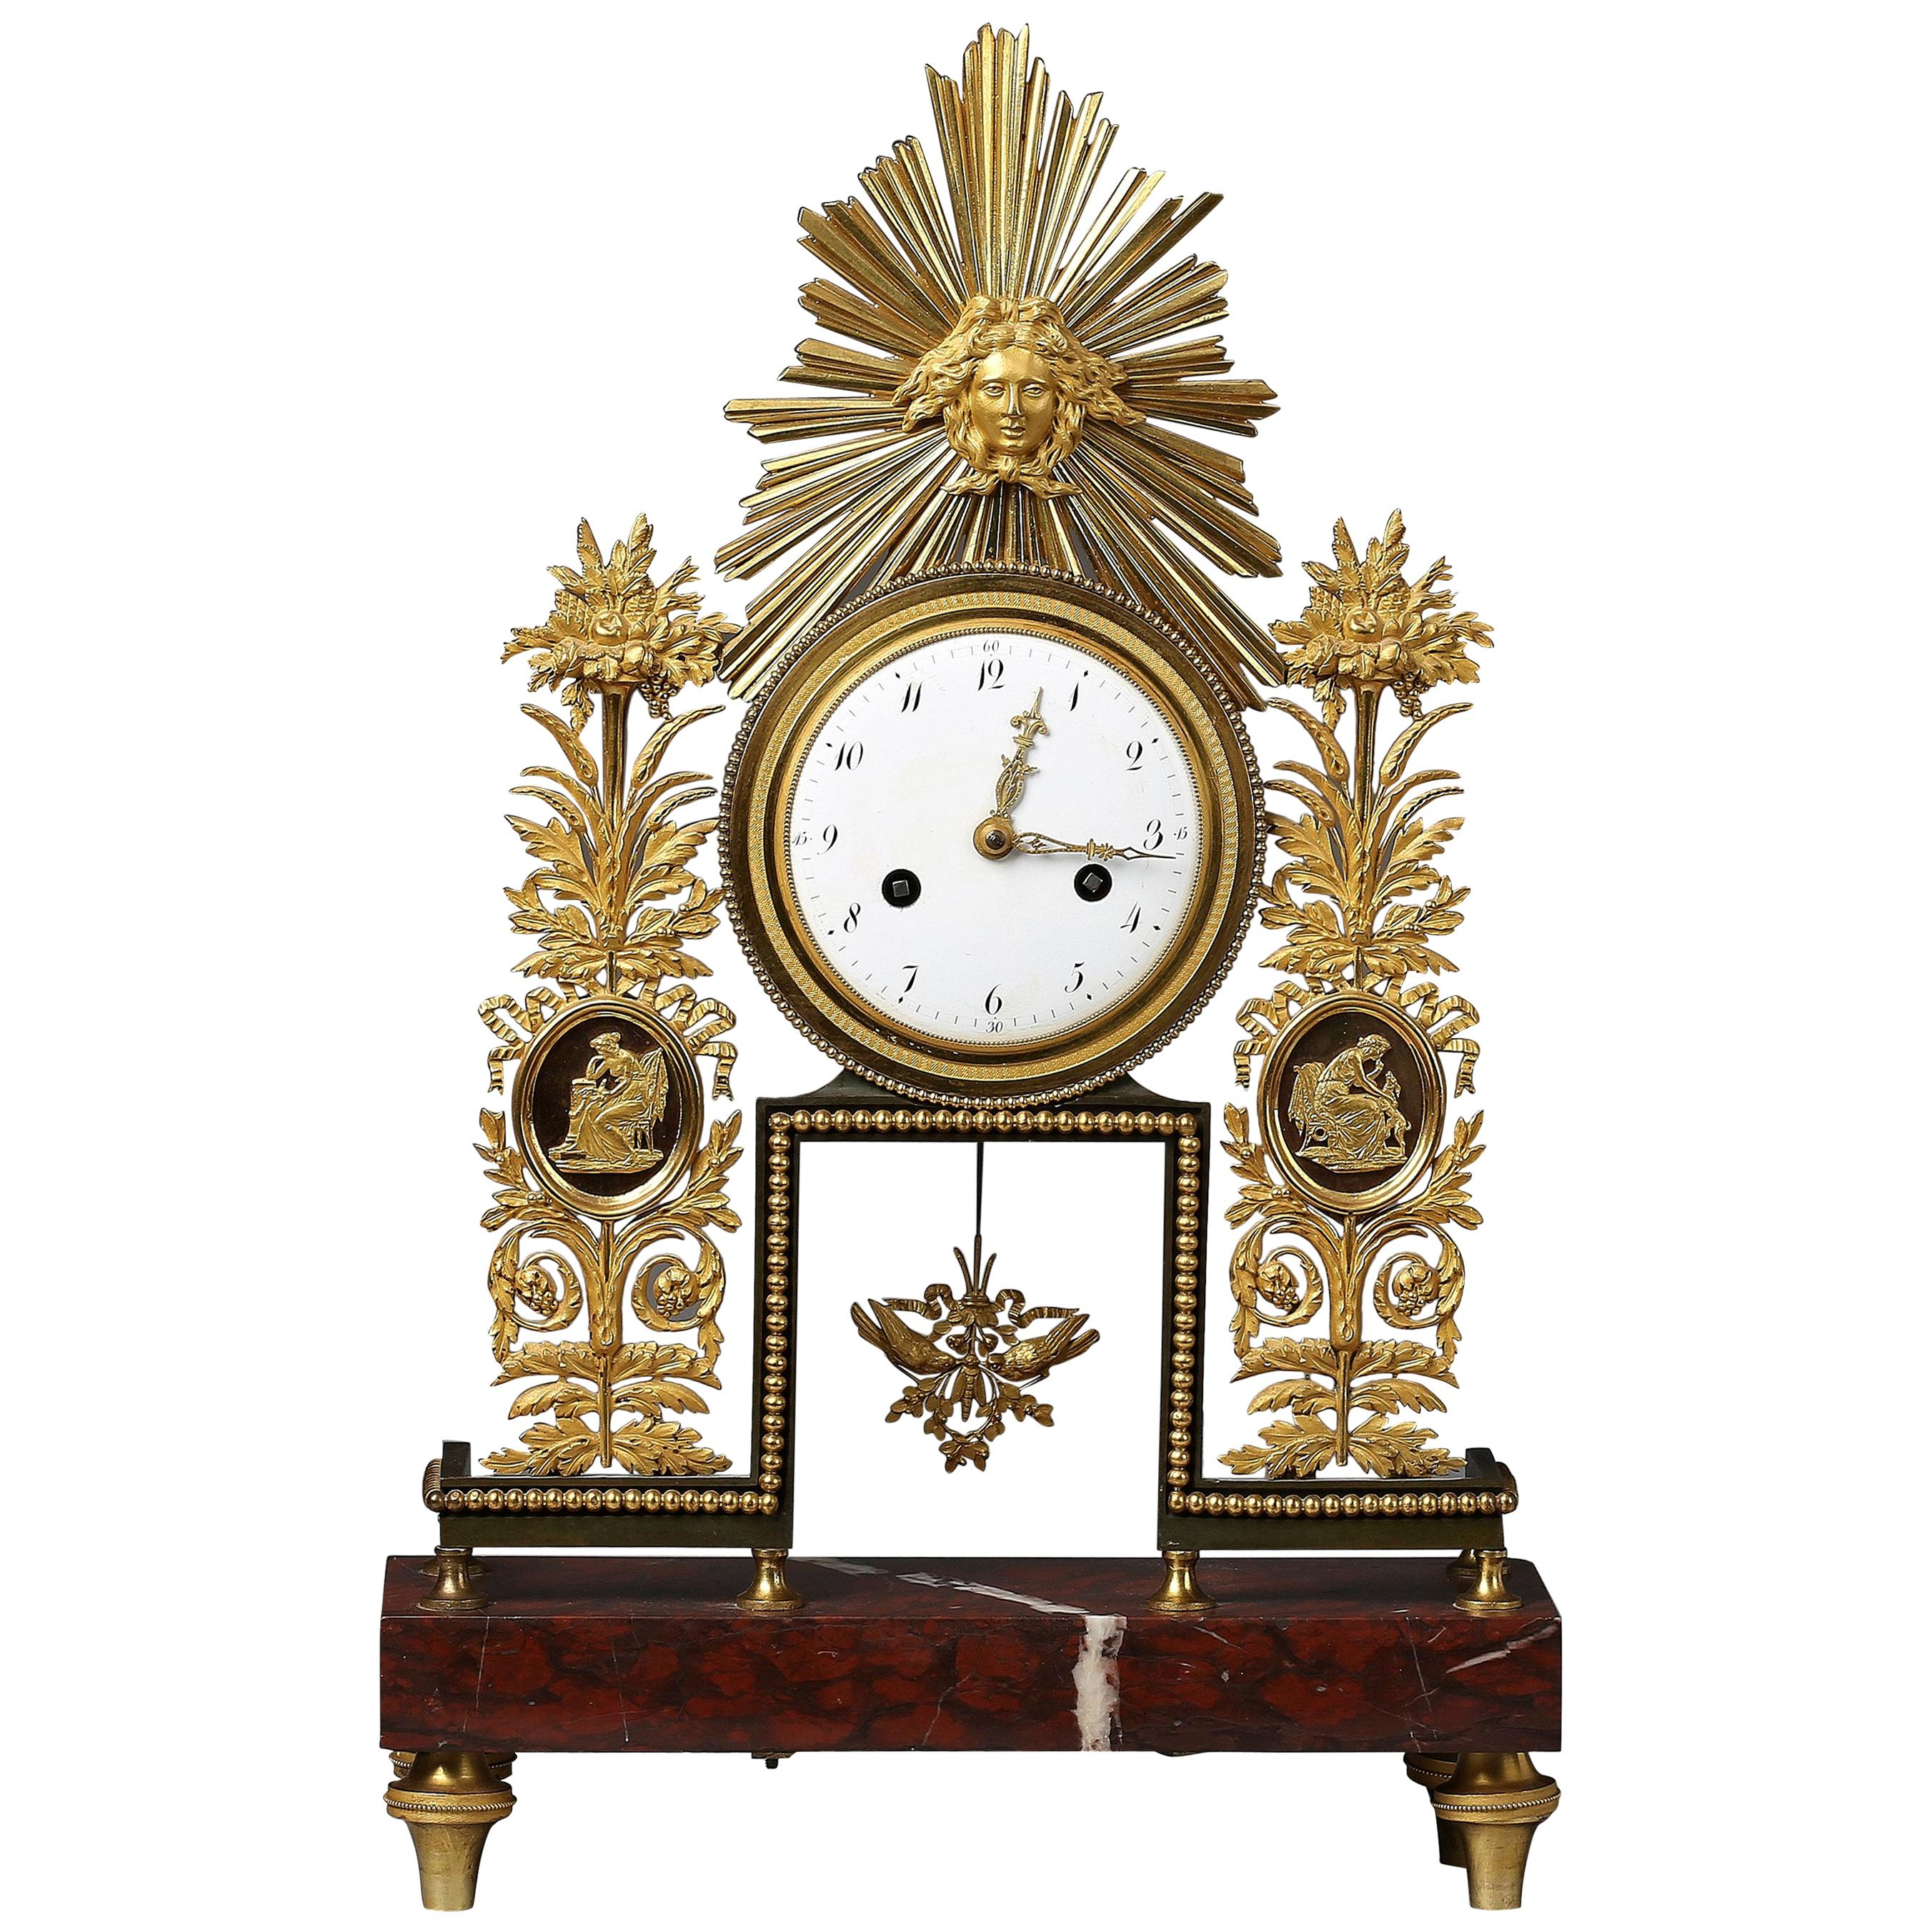 Louis XVI Gilt Bronze and Marble Mantel Clock, 18th Century